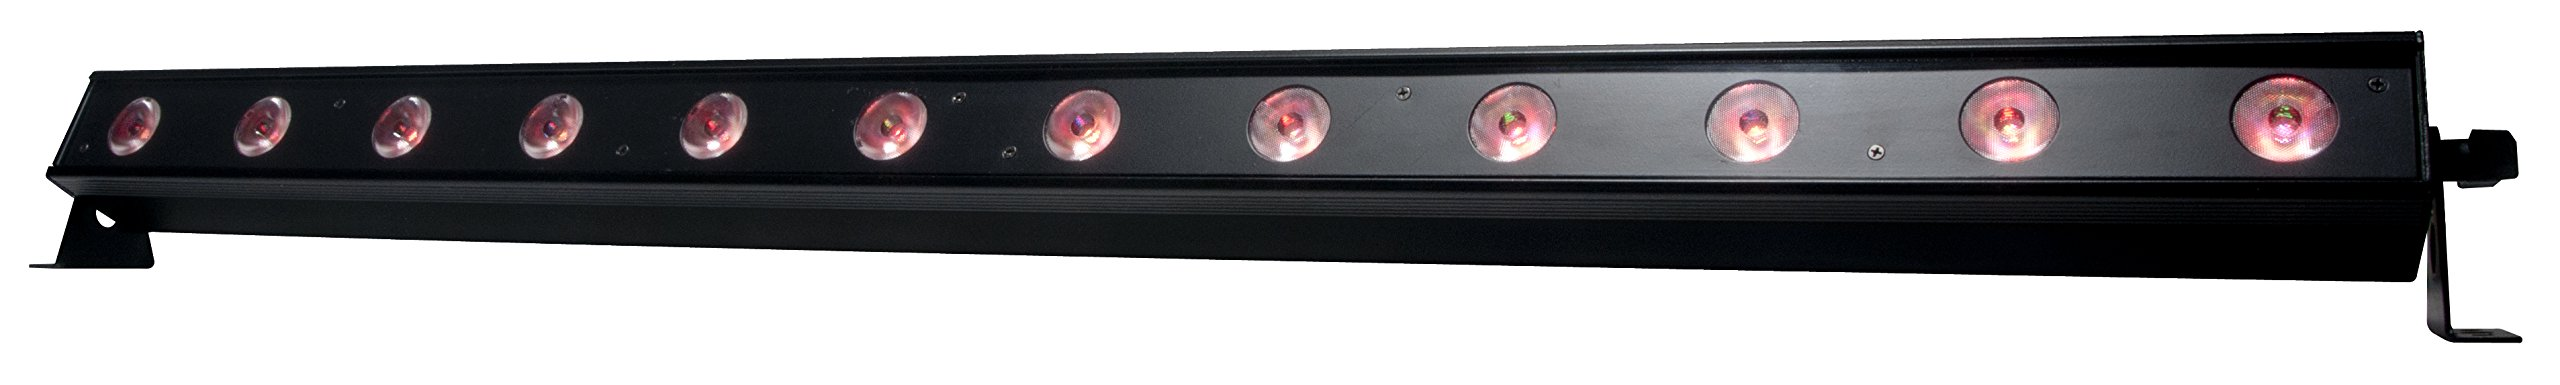 ADJ Products UB 12H LED Lighting, 1 Meter